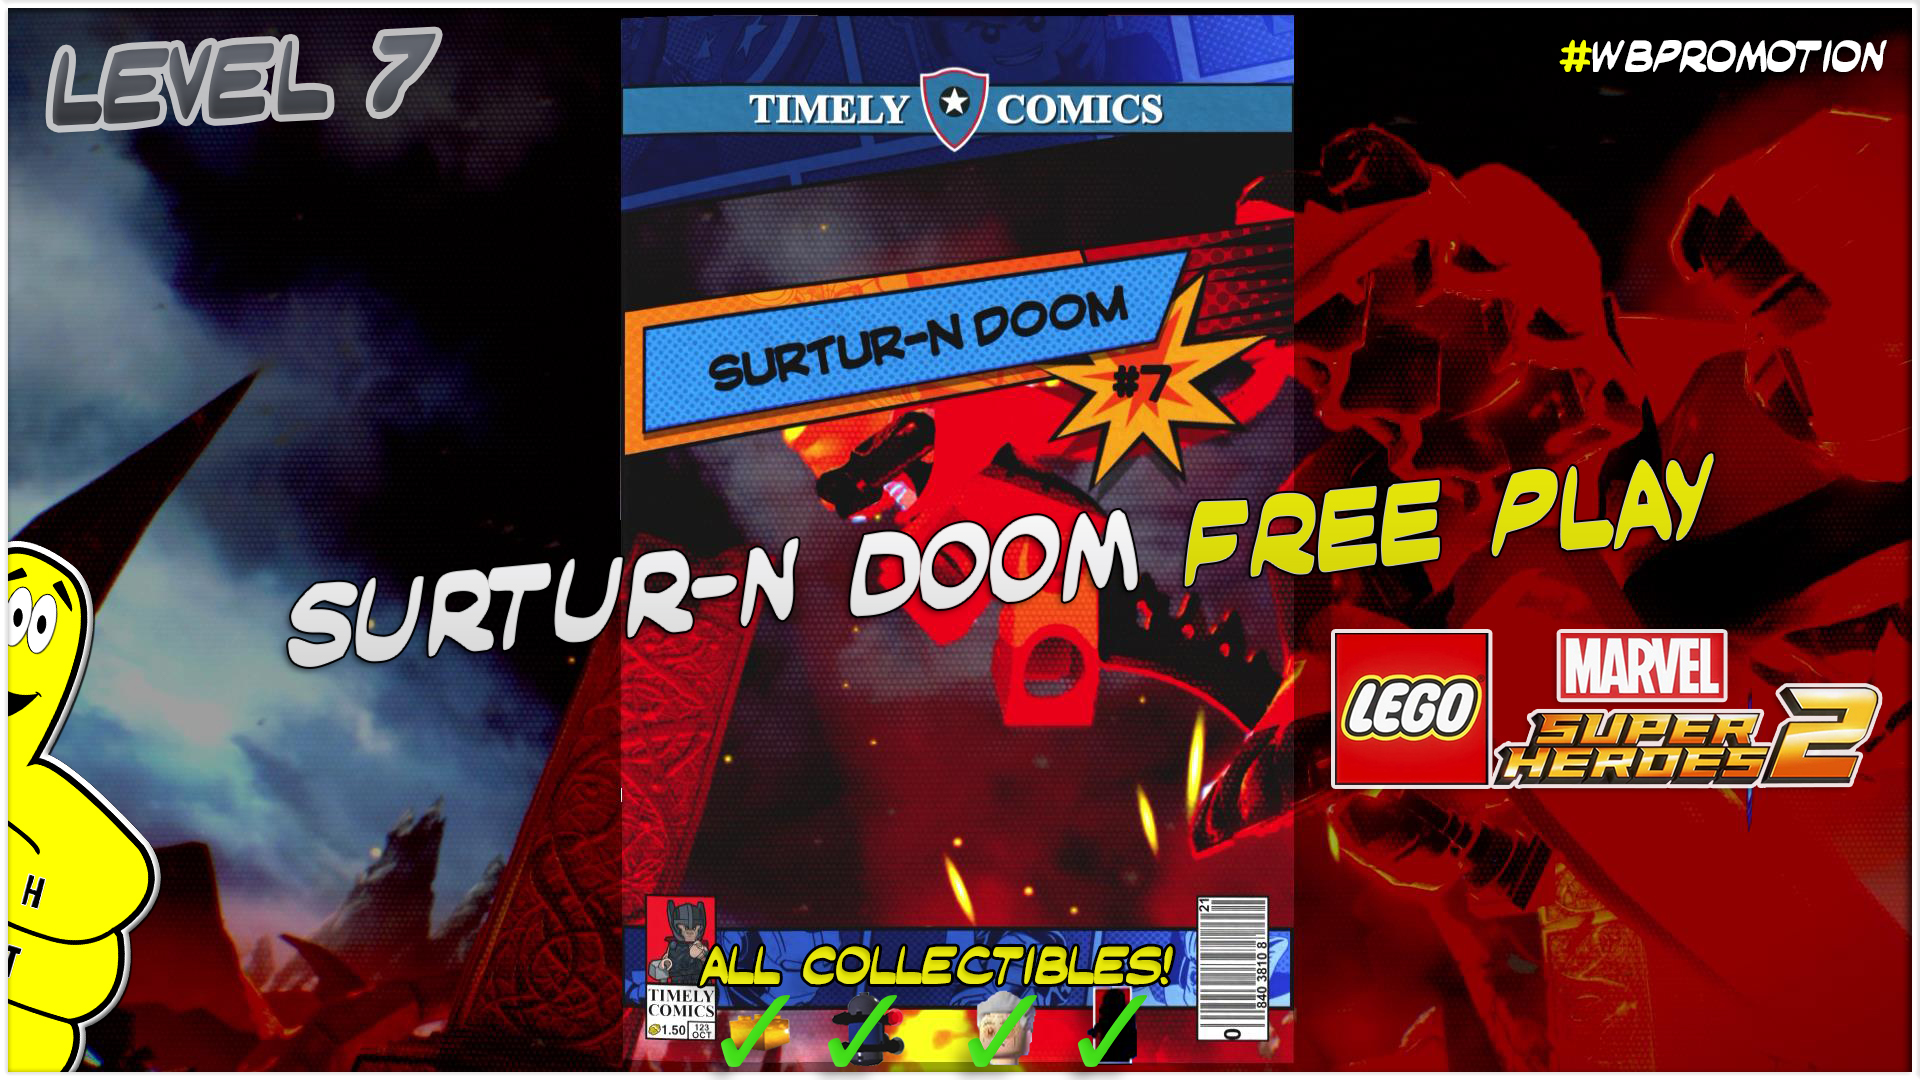 Lego Marvel Superheroes 2: Level 7 / Surtur-N Doom FREE PLAY (All Collectibles) – HTG